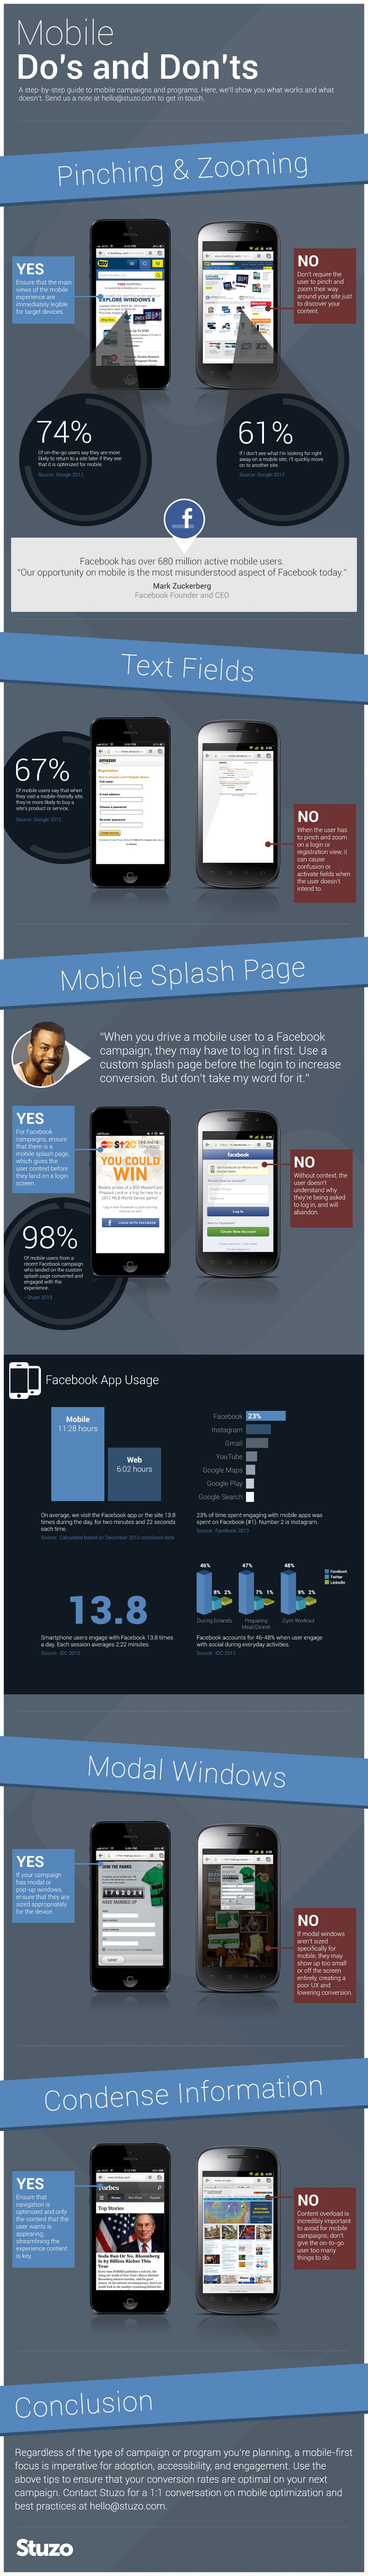 Facebook-Mobile-Advertising